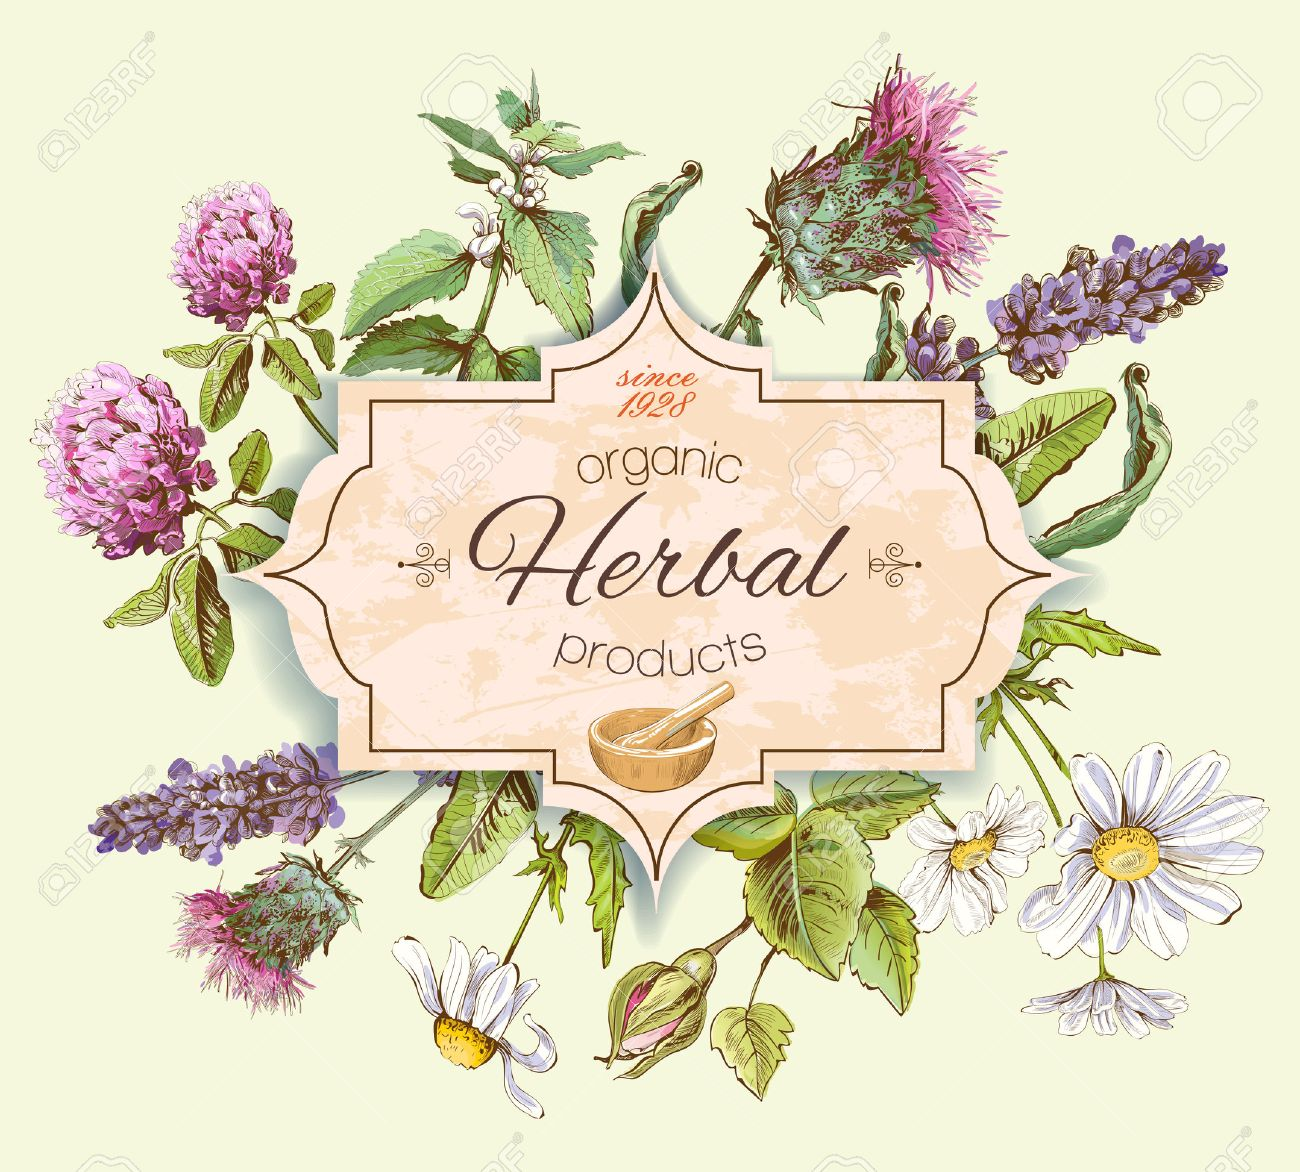 Vector vintage banner with wild flowers and medicinal herbs. Design for cosmetics, store, beauty salon, natural and organic, health care products. - 57796366